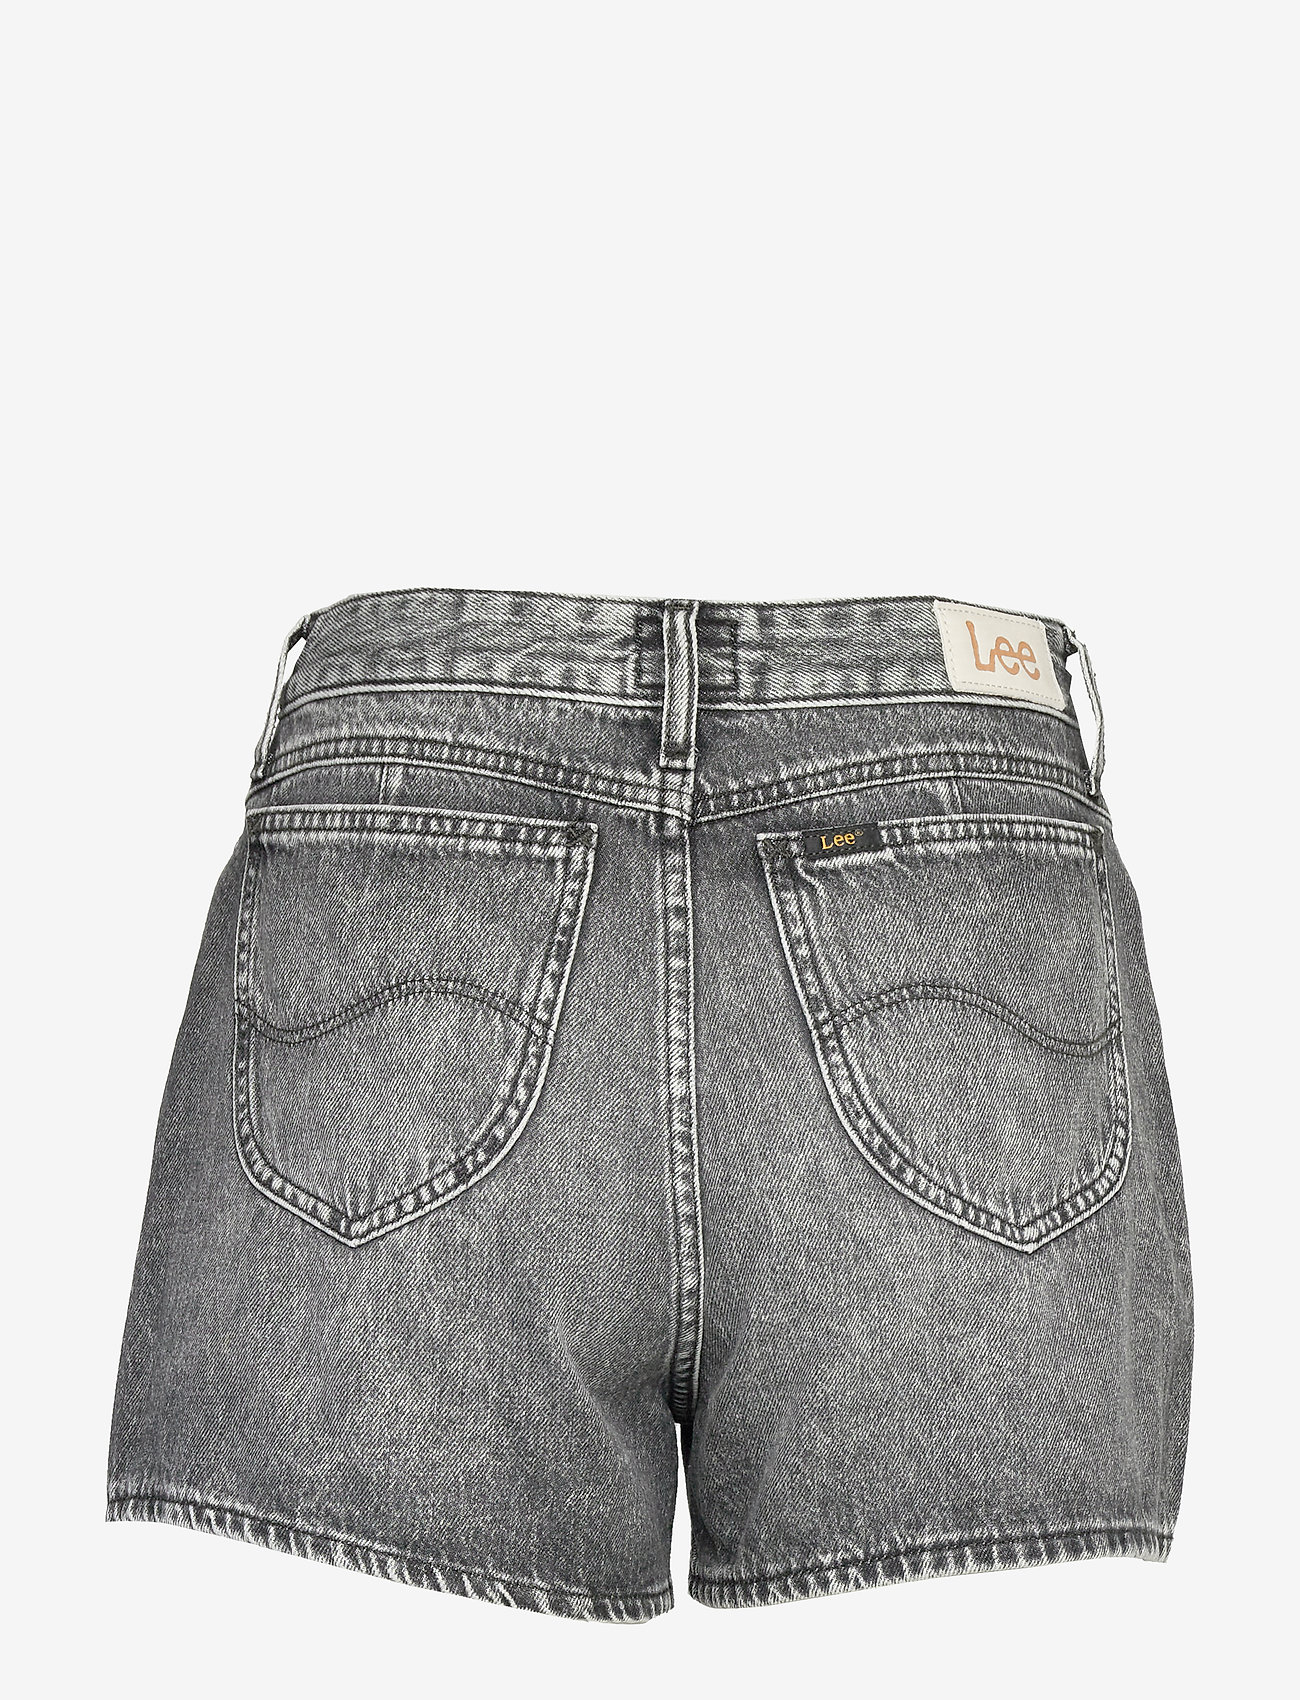 Lee Jeans - THELMA SHORT - denimshorts - grey sarandon - 1